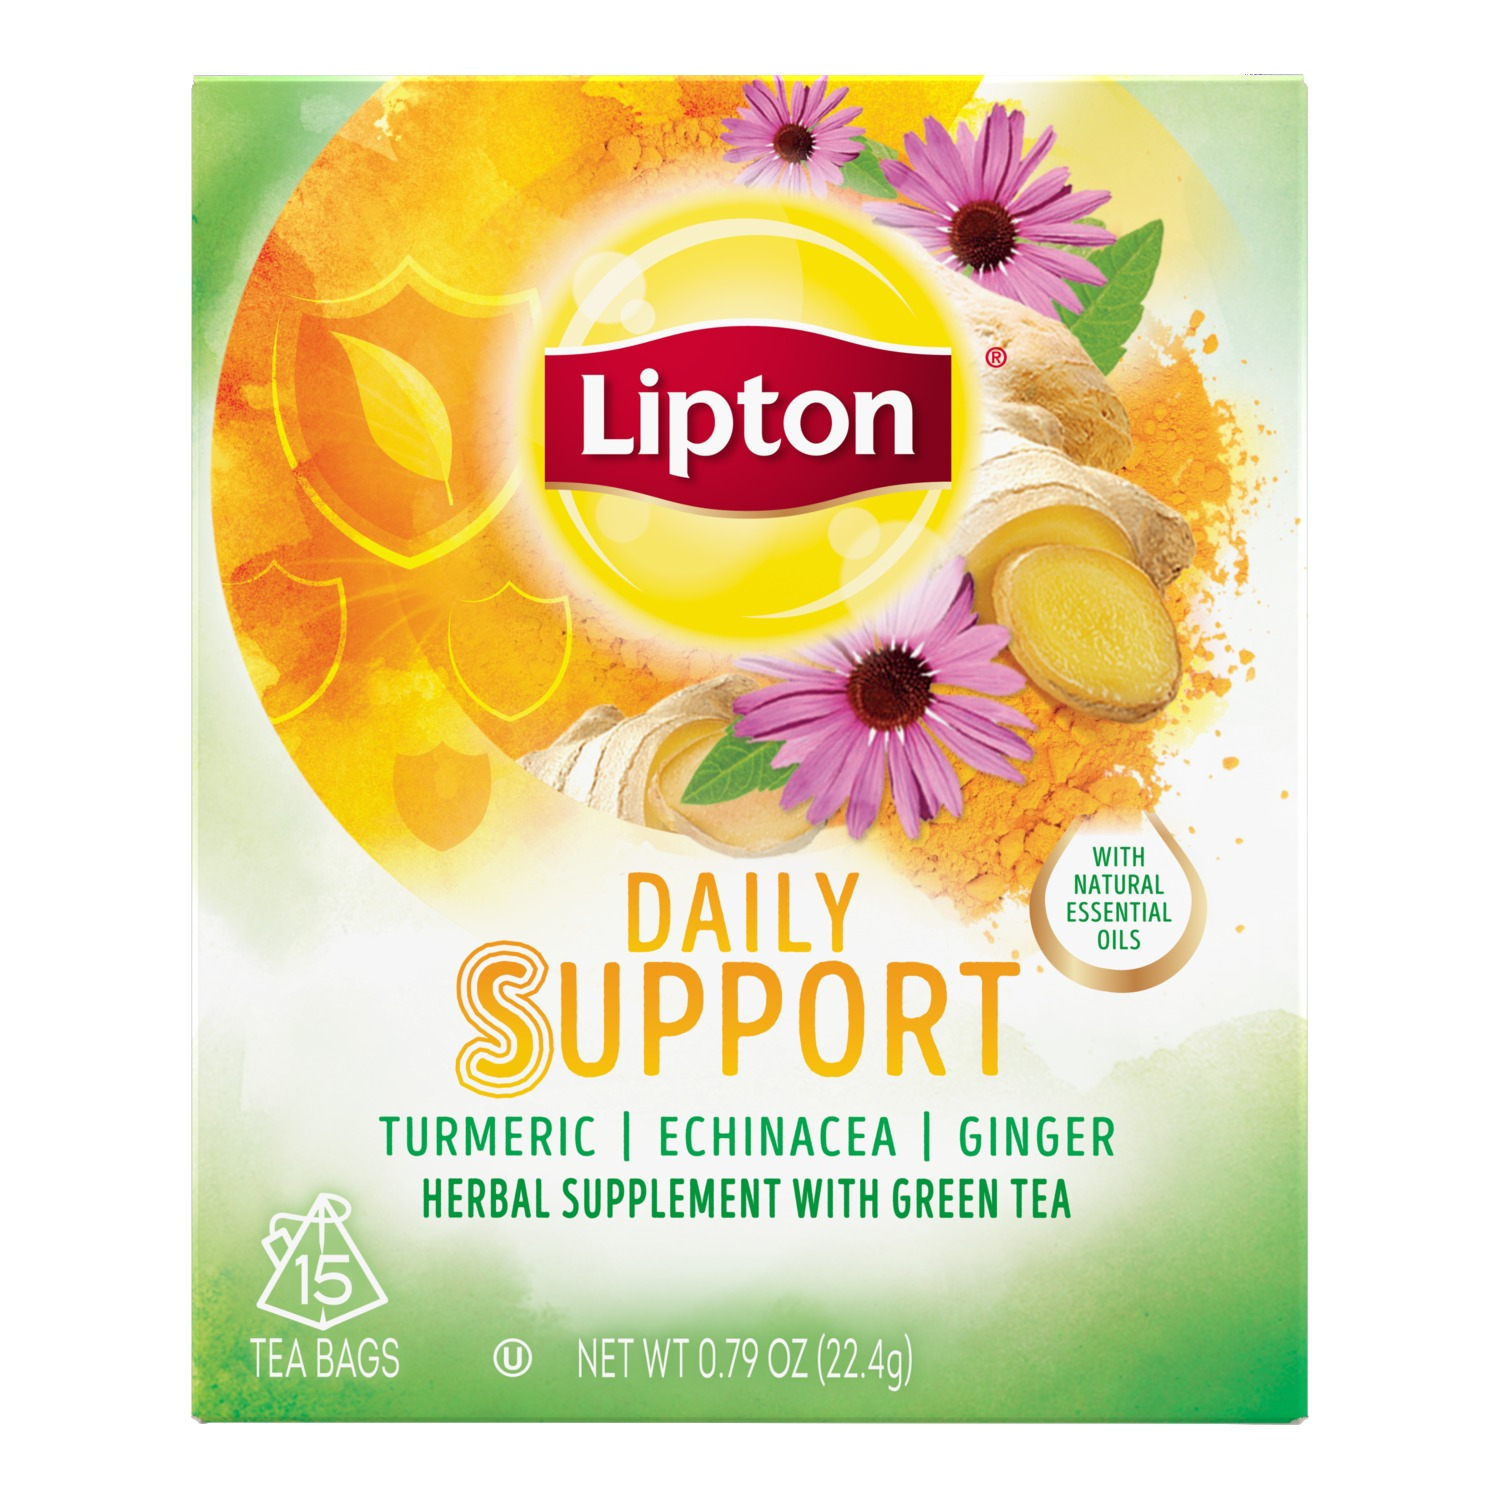 (4 Boxes) Lipton Herbal Supplement with Green Tea Daily Support 15 ct